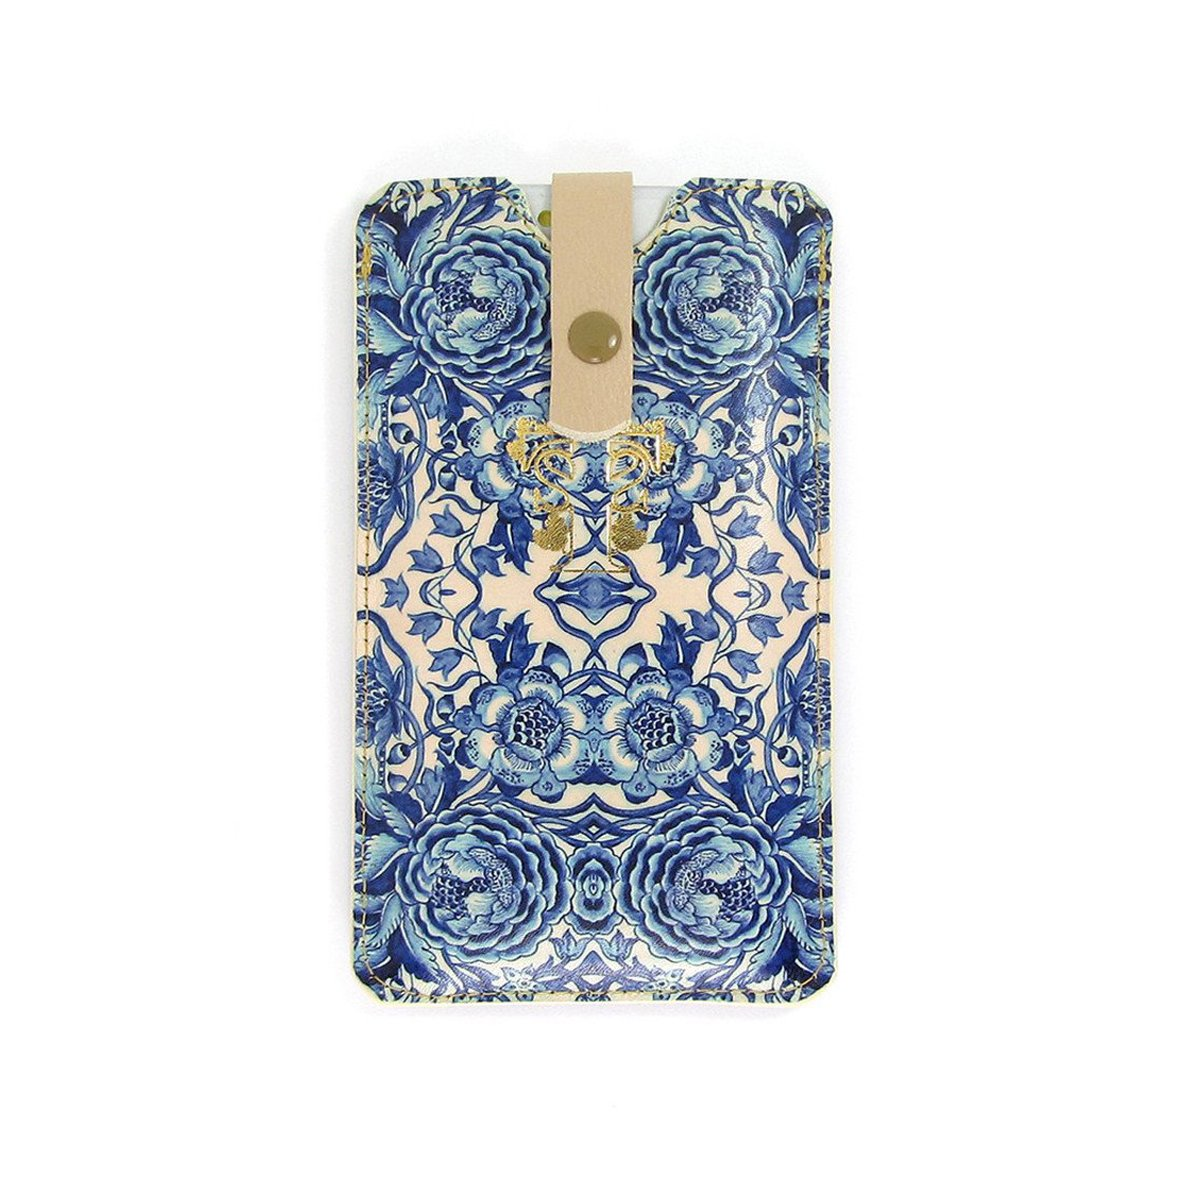 Leather Phone Case Sleeve - Blue & White Porcelain